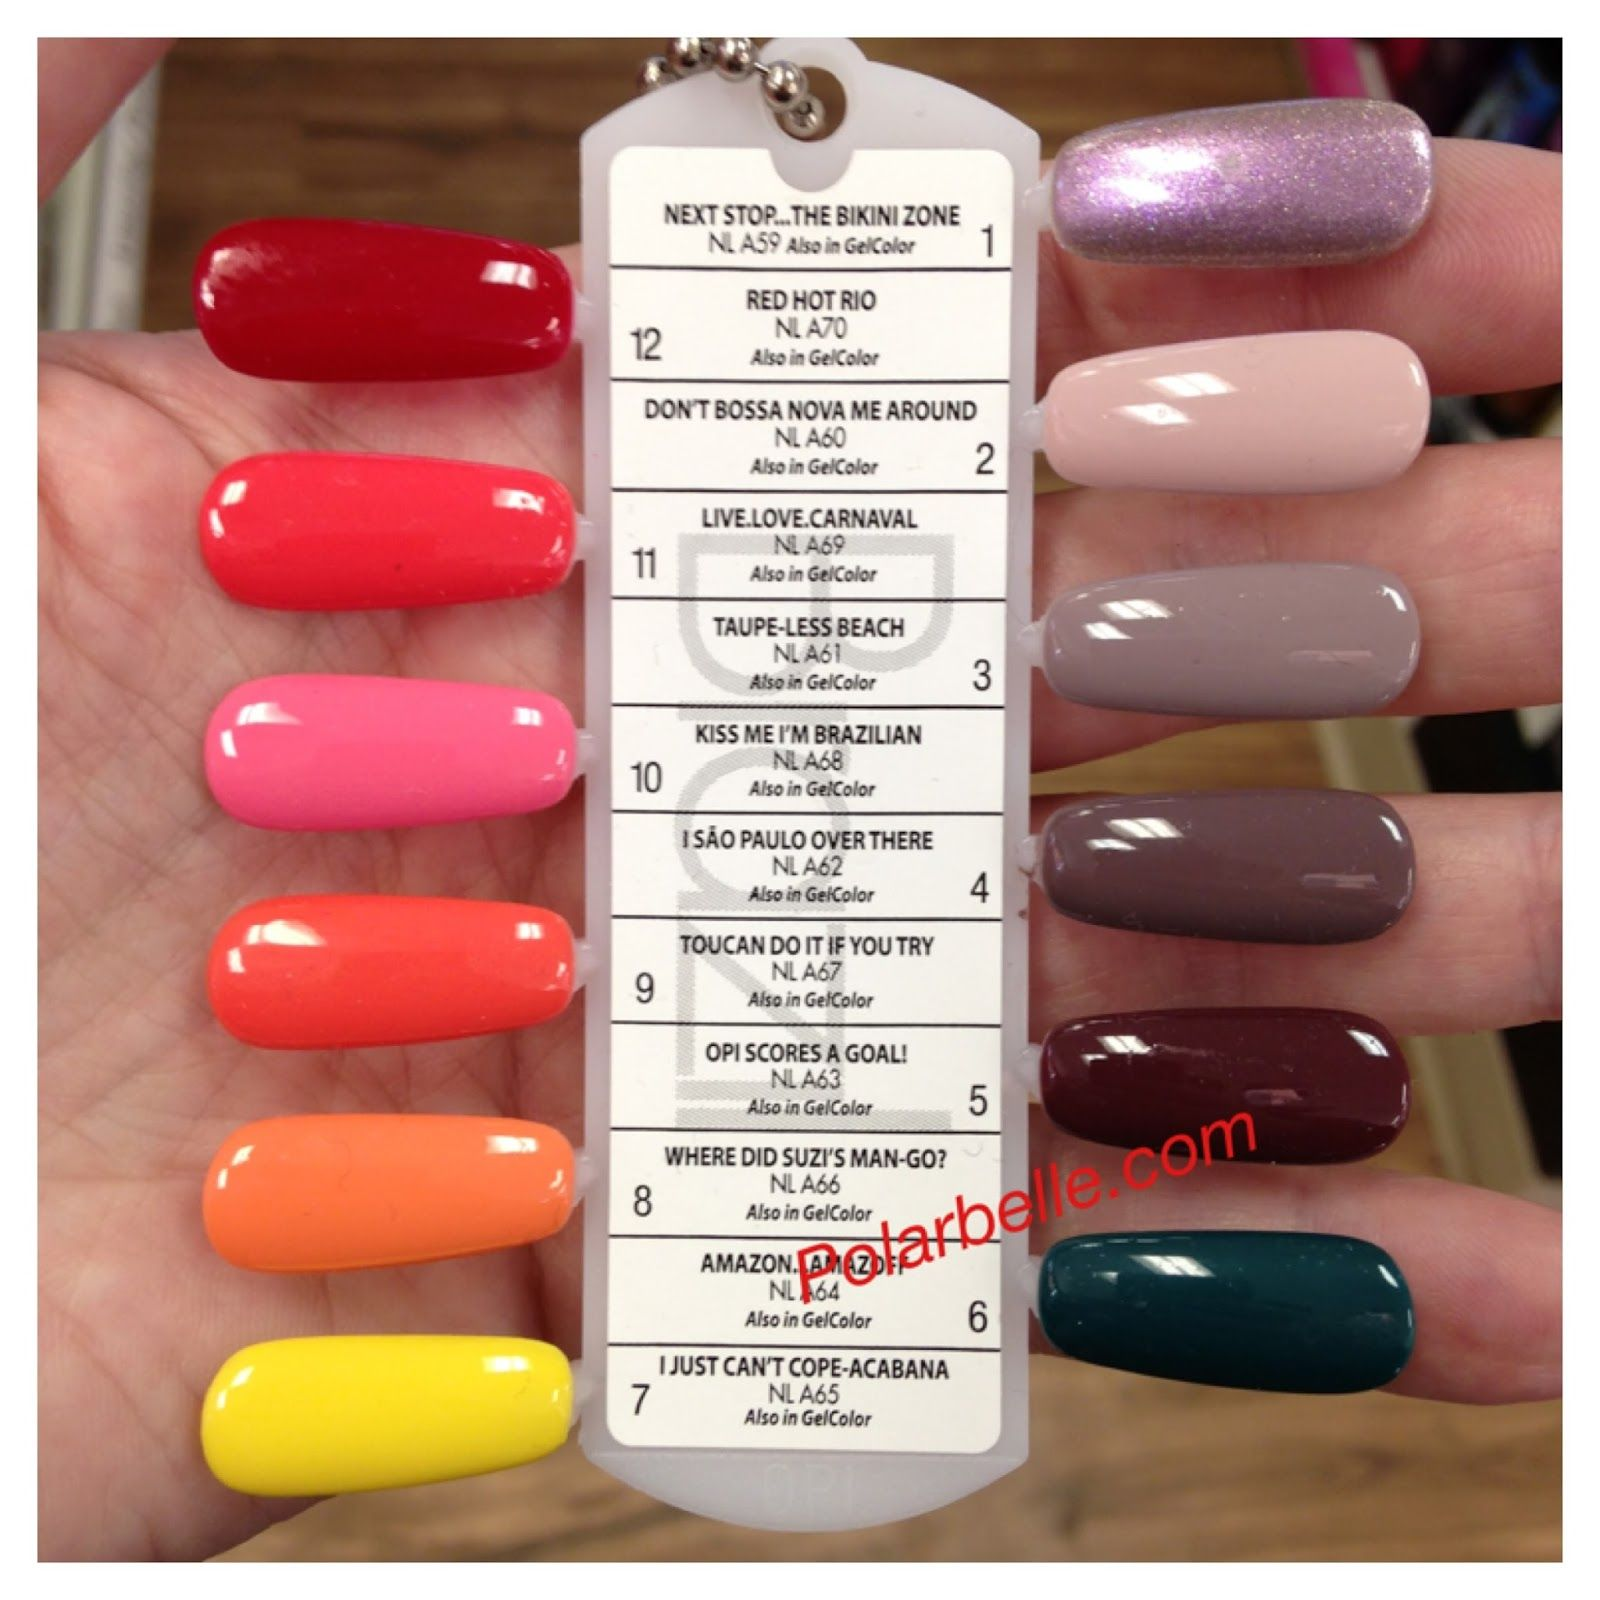 New Opi Brazil Nail Polish Collection Pics Swatches With Names Polarbelle Nail Polish Color Names Opi Gel Nails Opi Nail Colors